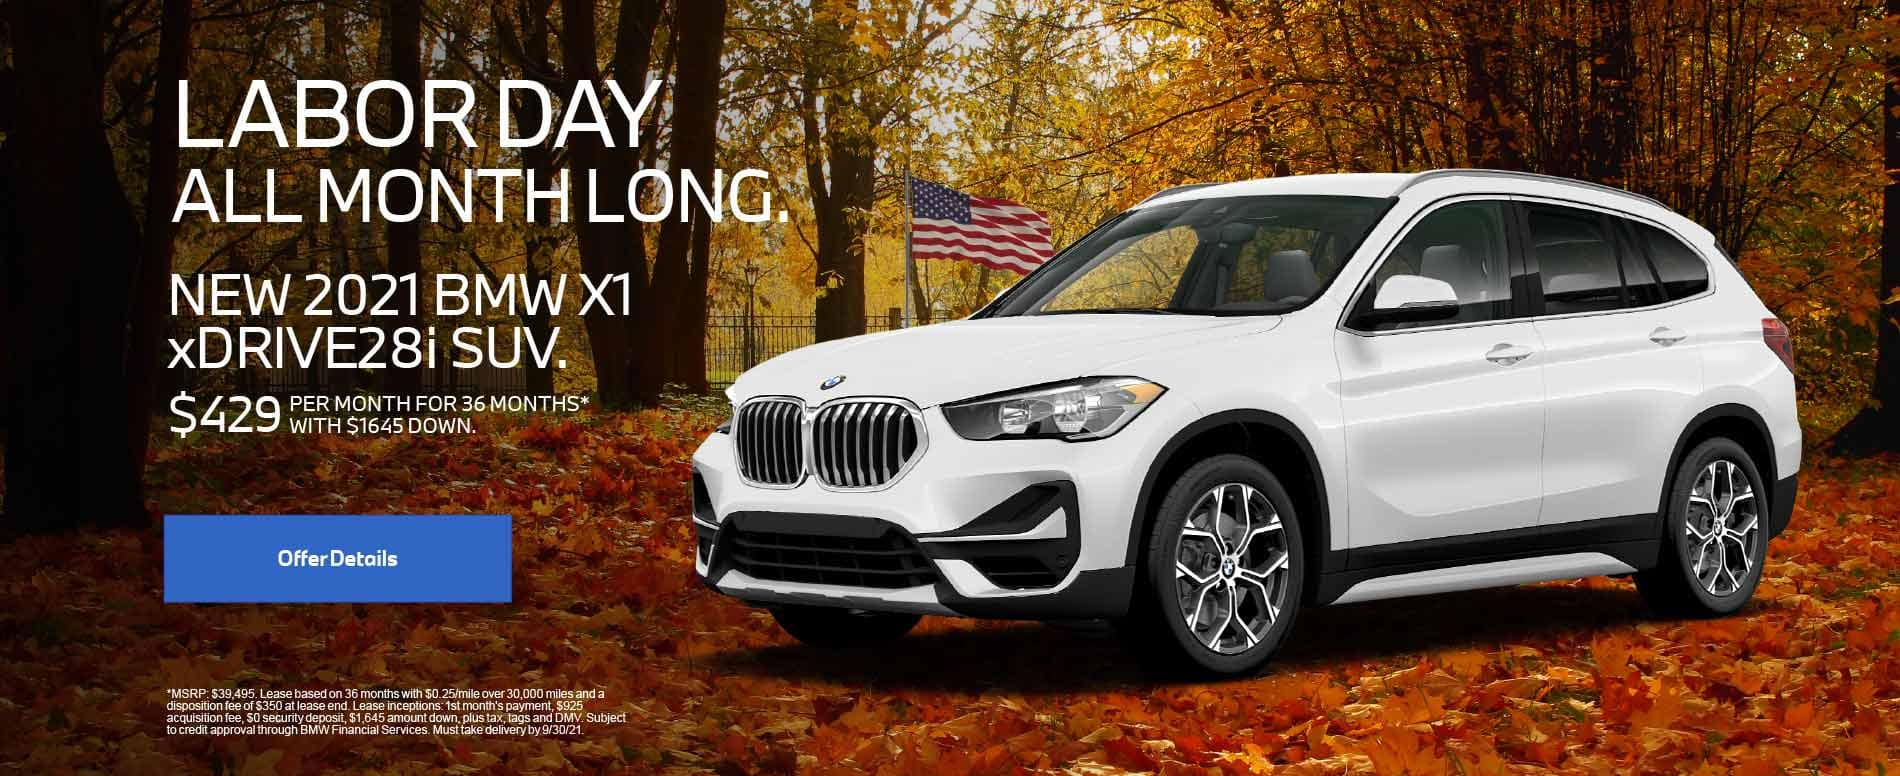 New 2021 BMW X1 xDRIVE28i SUV. $429 PER MONTH FOR 36 months with $1,645 Down.